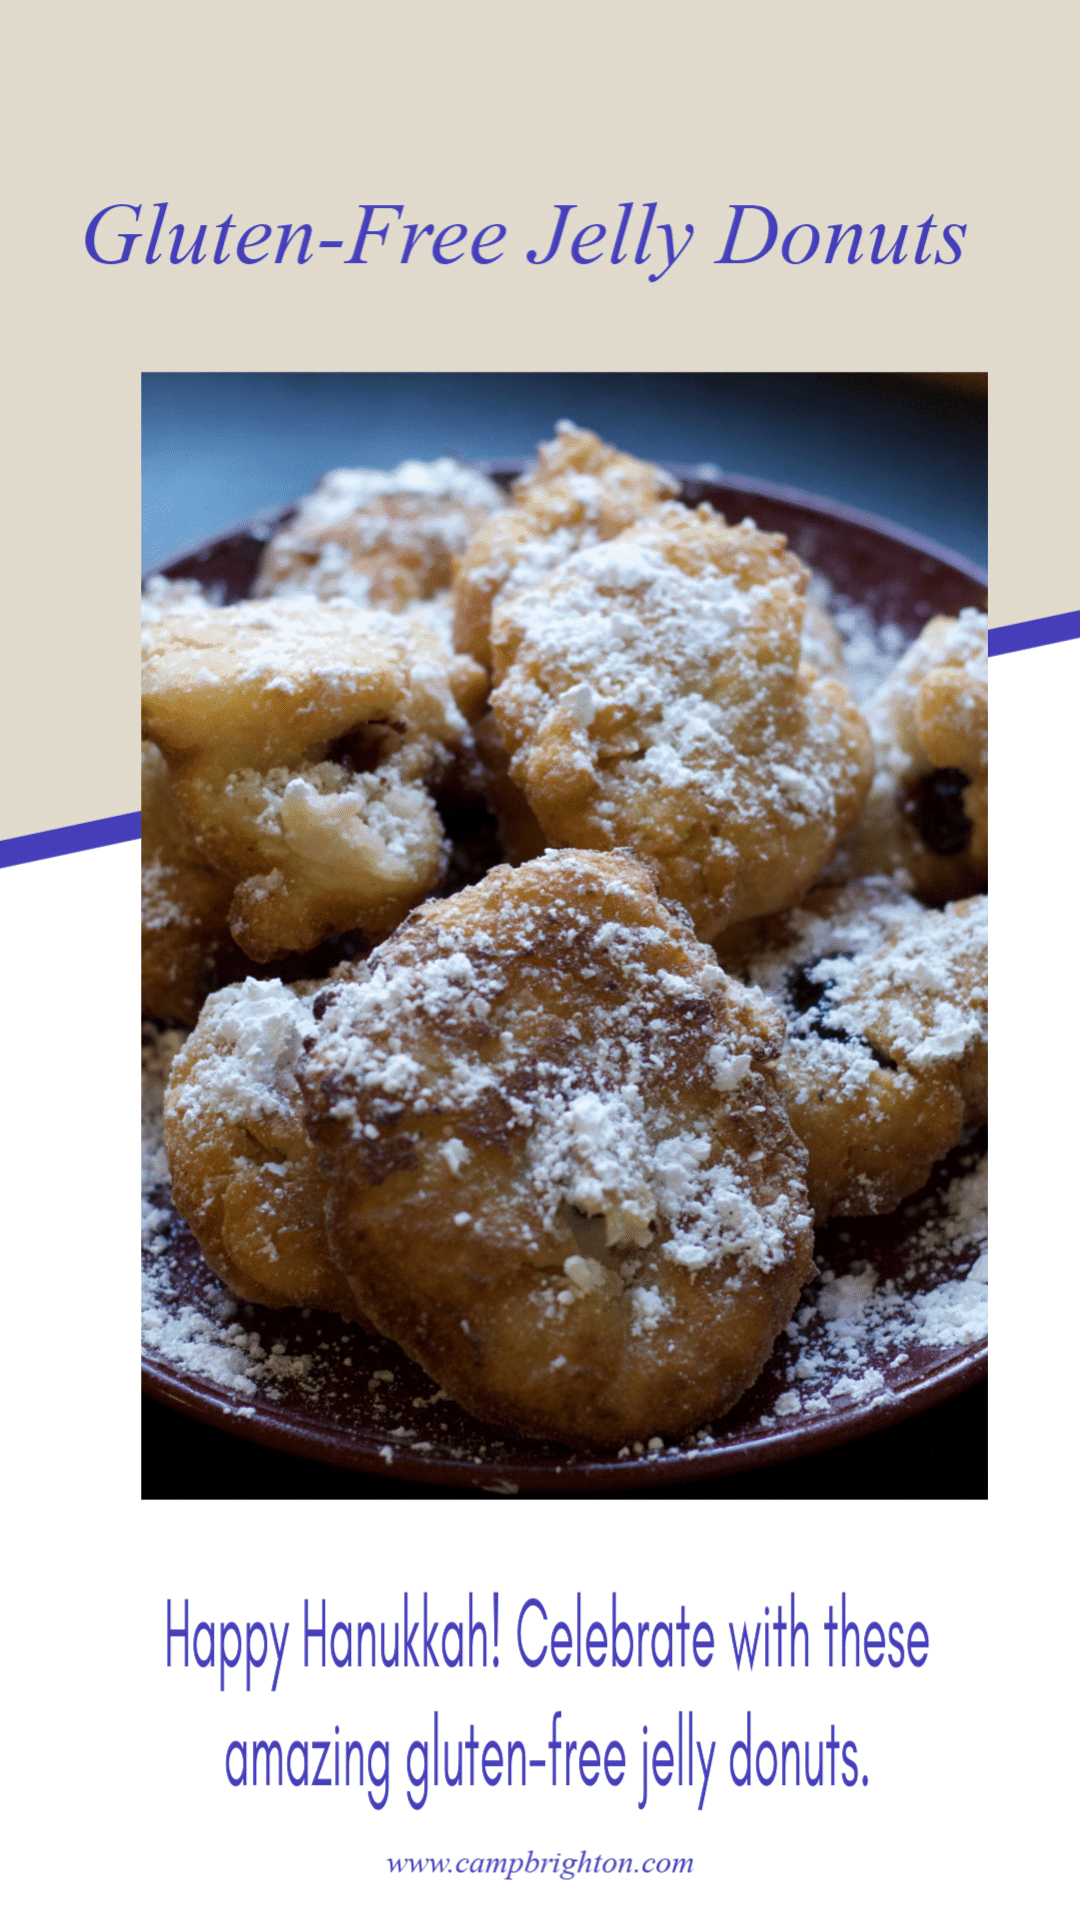 Happy Hanukkah! Celebrate With These Amazing Gluten-Free Jelly Donuts!